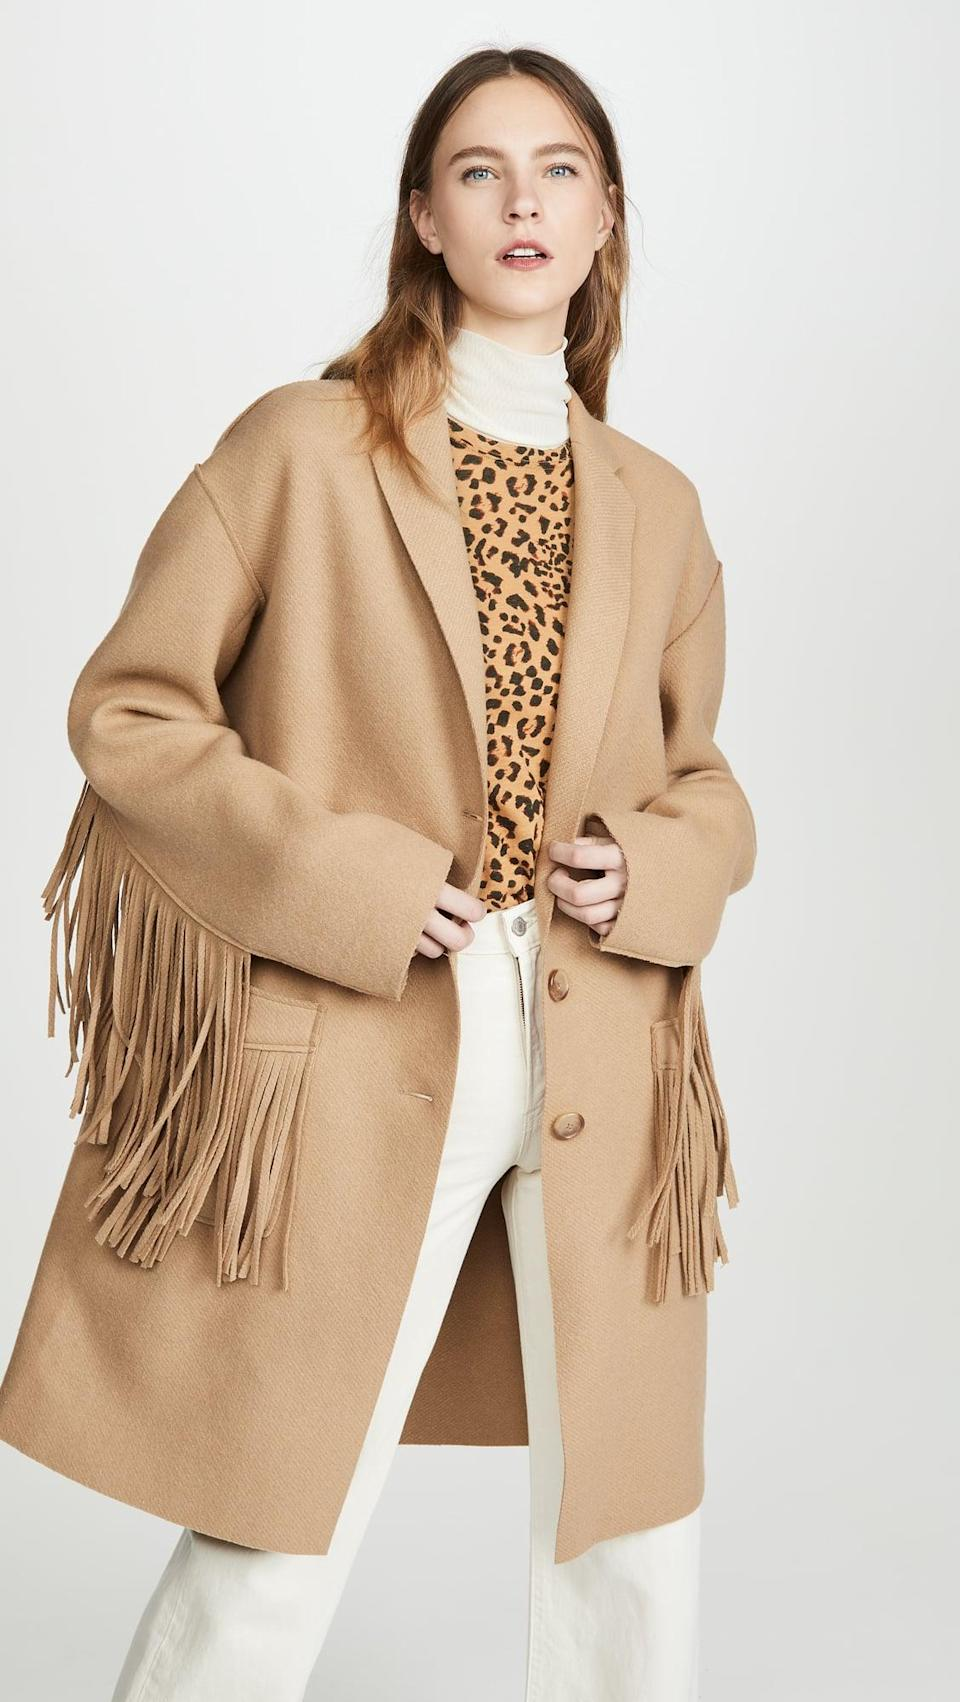 <p>If you feel like splurging, this <span>R13 Fringe Raw Cut Coat</span> ($1,595) is impossibly cool. It's a little bit boxy, has a dramatic fringe, and turns any outfit into a statement.</p>